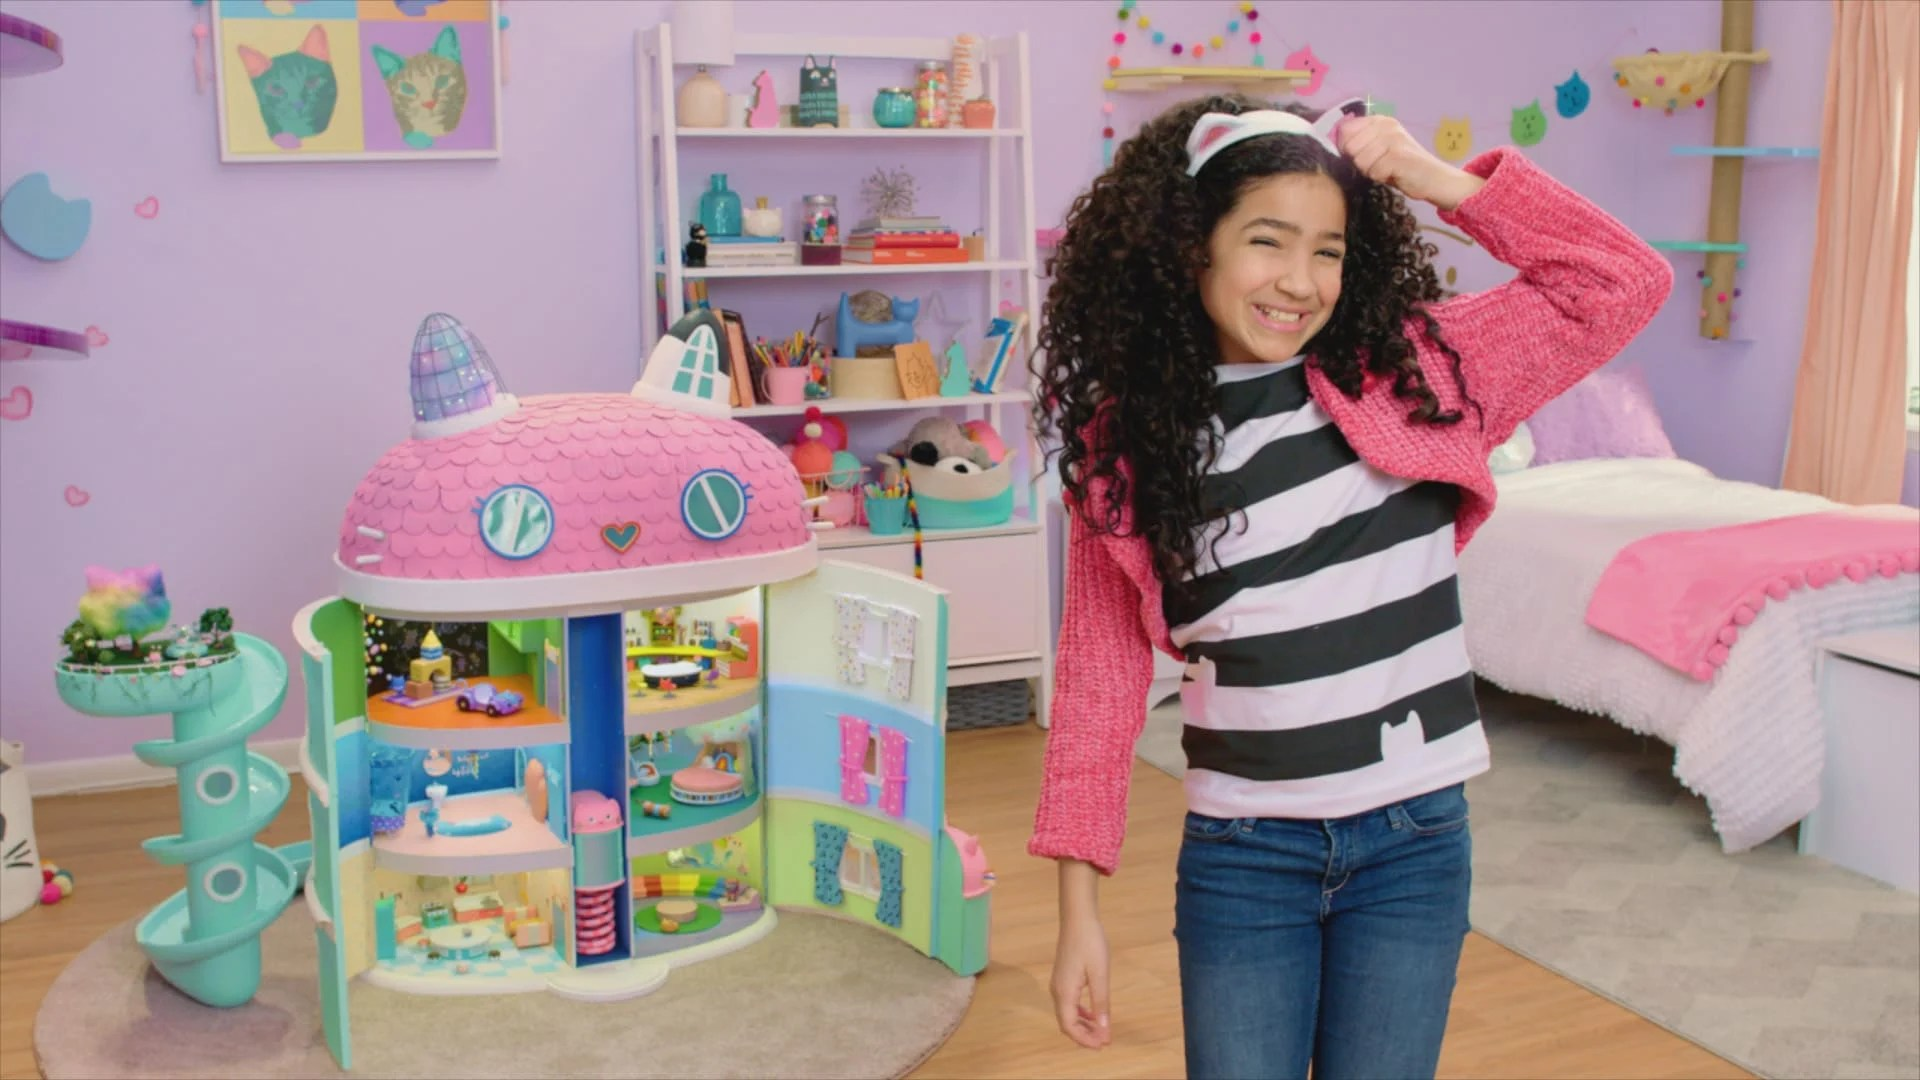 Dreamworks Gabby's Dollhouse. Welcome toGabby's Dollhouse, the preschool show with a surprise inside! DreamWorks Gabby's Dollhouseunboxes a surprise before jumping into a fantastical animated world full of adorable cat characters that live inside Gabby's dollhouse. Any adventure can unfold when we play inGabby's Dollhouse! Premiering on Netflix January 5th, 2021.